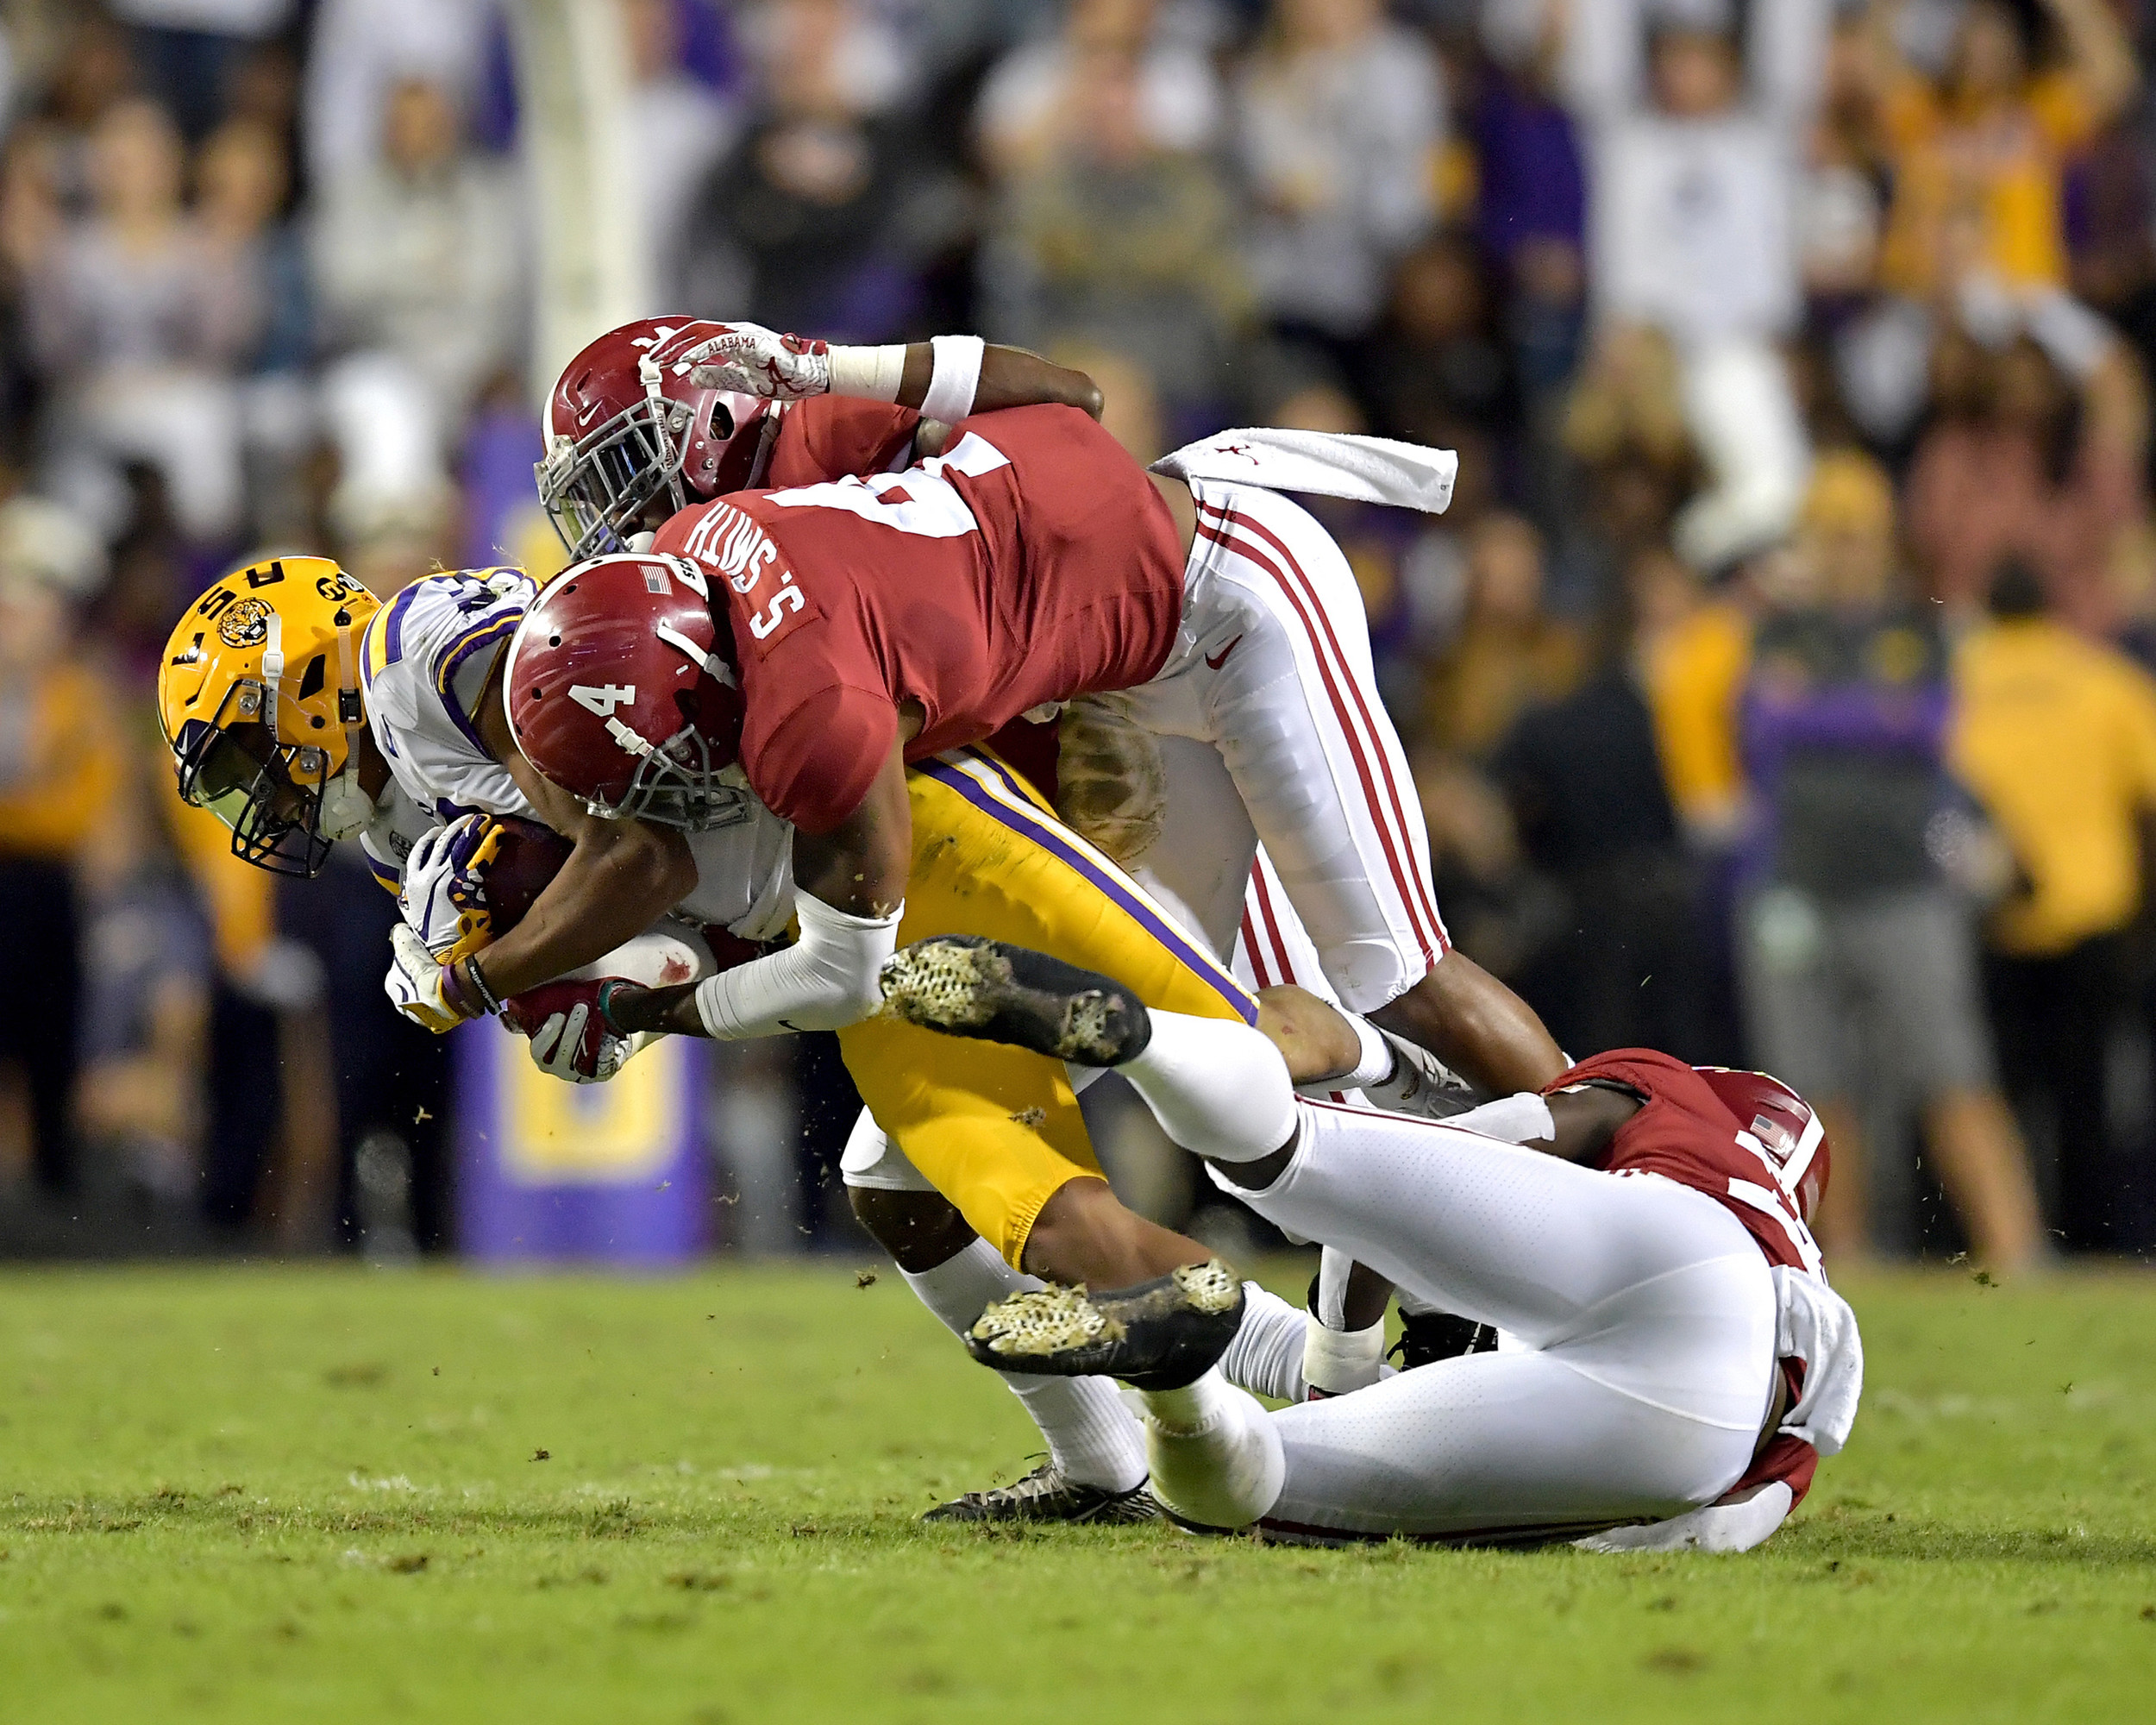 An LSU Tigers player is swarmed by the Alabama Crimson Tide defense in the first half of an NCAA football game Saturday, November 3, 2018, at Tiger Stadium in Baton Rouge, La. Alabama wins 29-0. (Photo by Lee Walls)